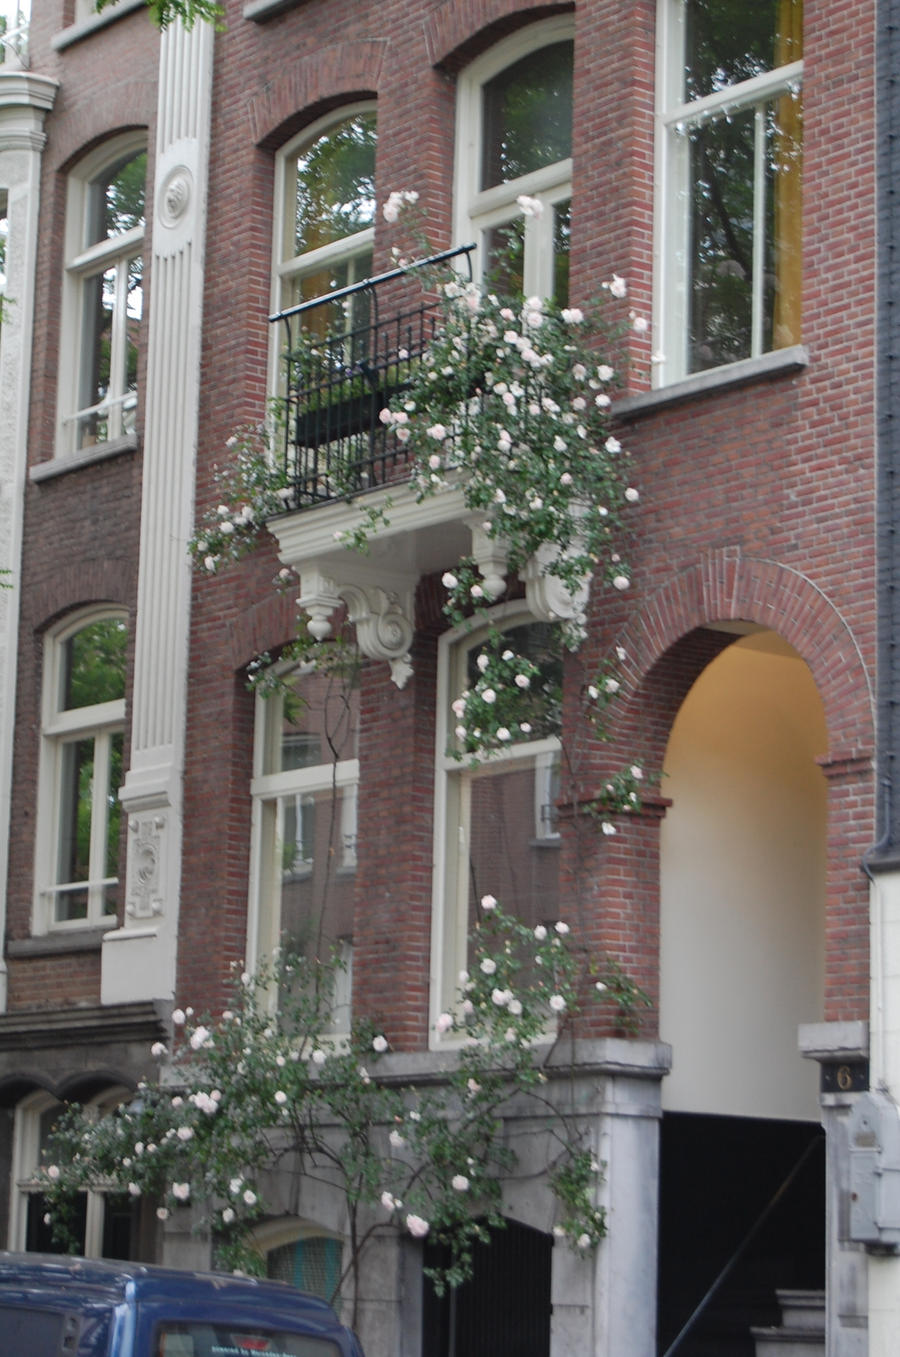 Amsterdam 9 by hippo2